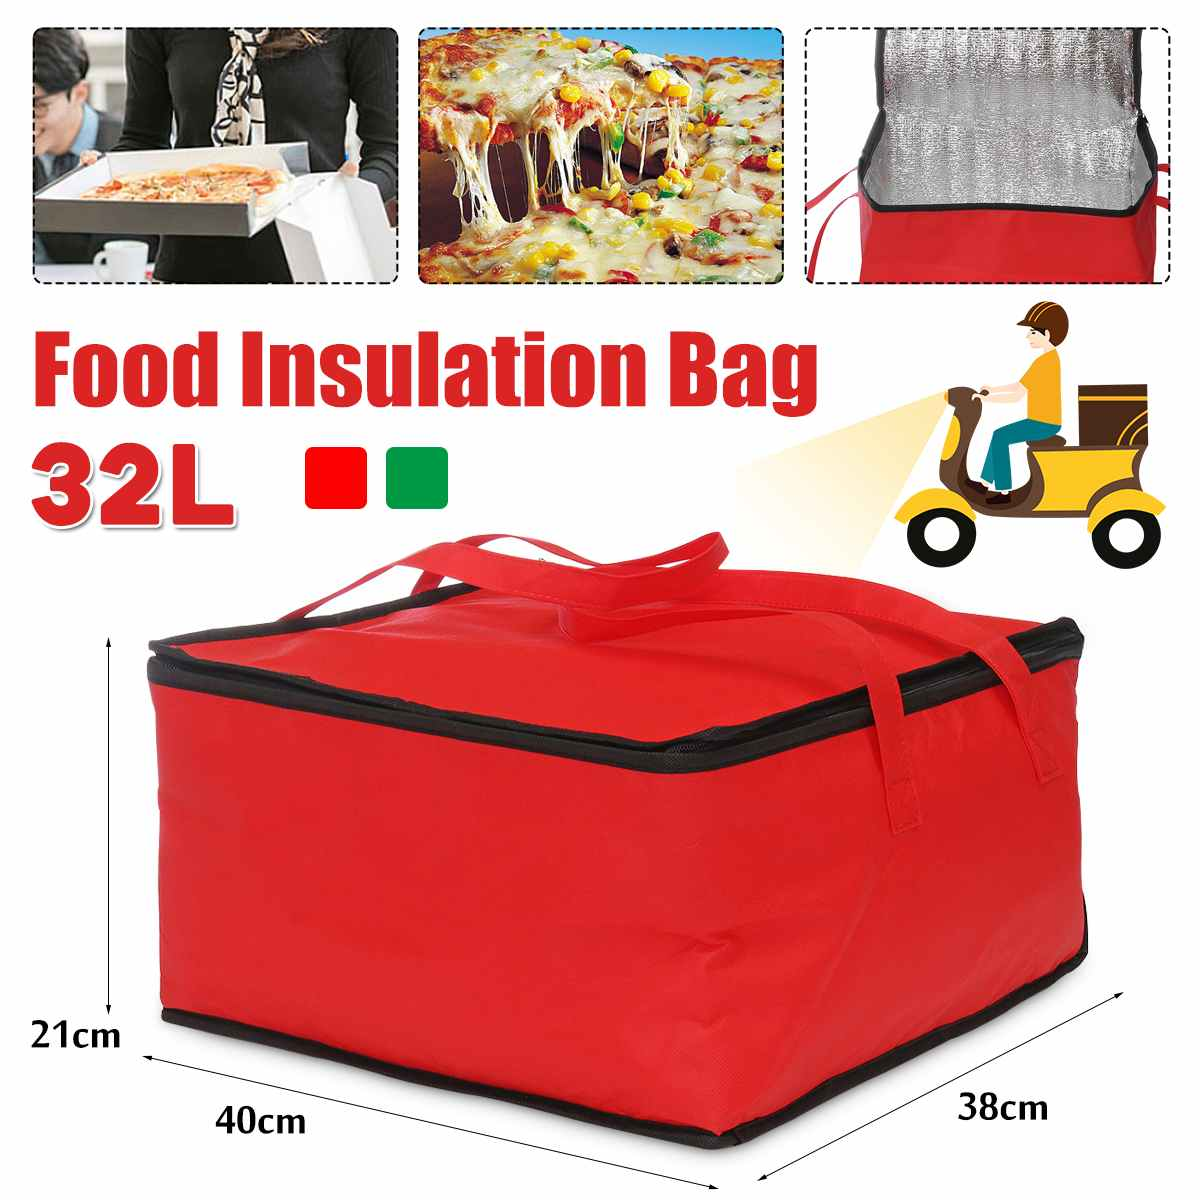 32L Waterproof Insulated Bag Folding Picnic Portable Ice Pack Cooler Bag Insulation Food Thermal Bag Food Delivery Bag Pizza Bag